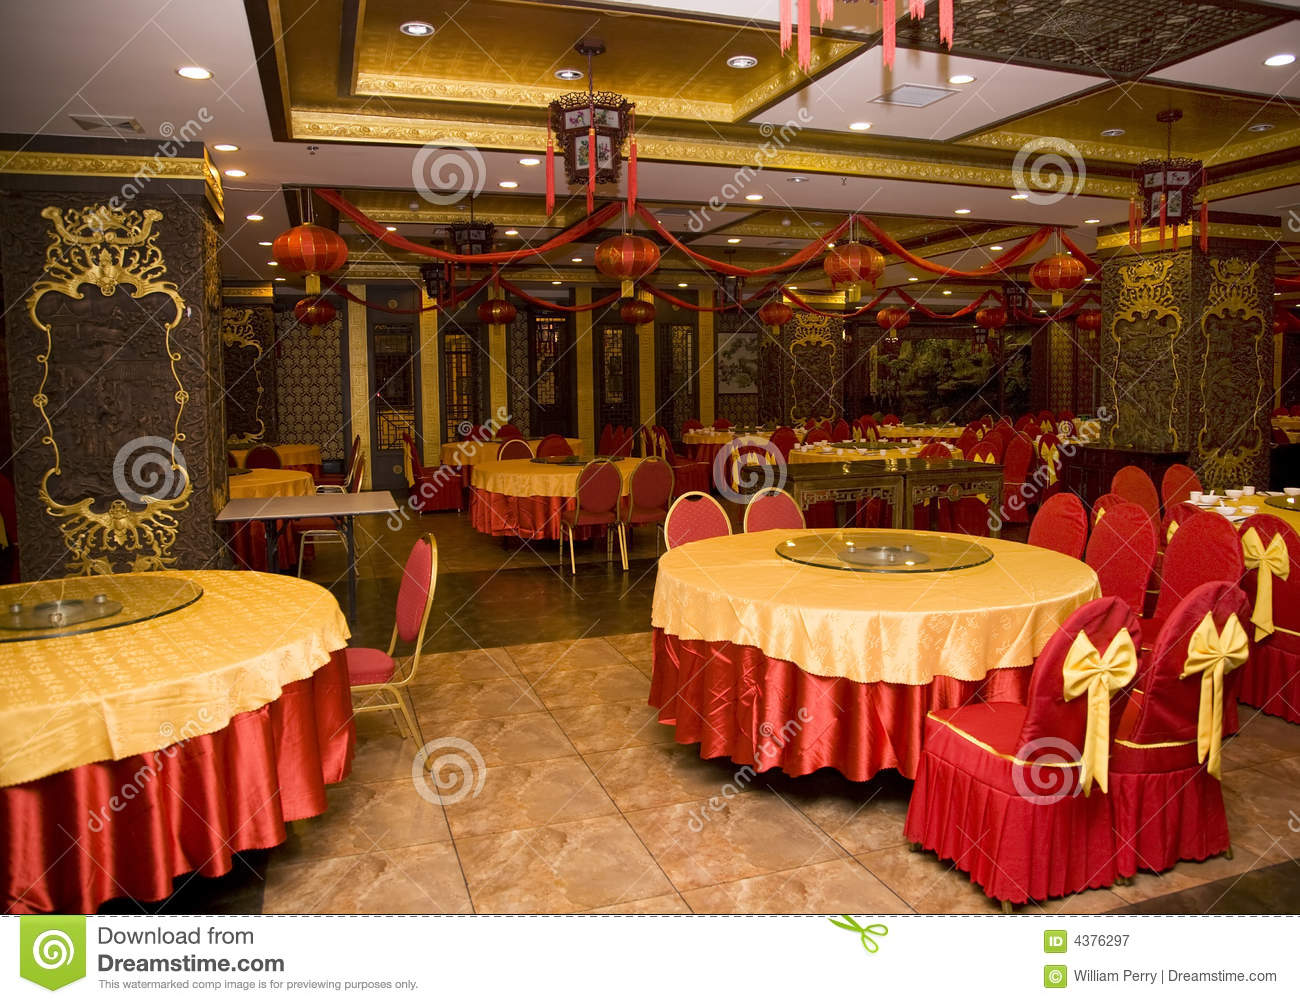 Lunar new year decorations chinese restaurant royalty free - Lunar new year decorations ...